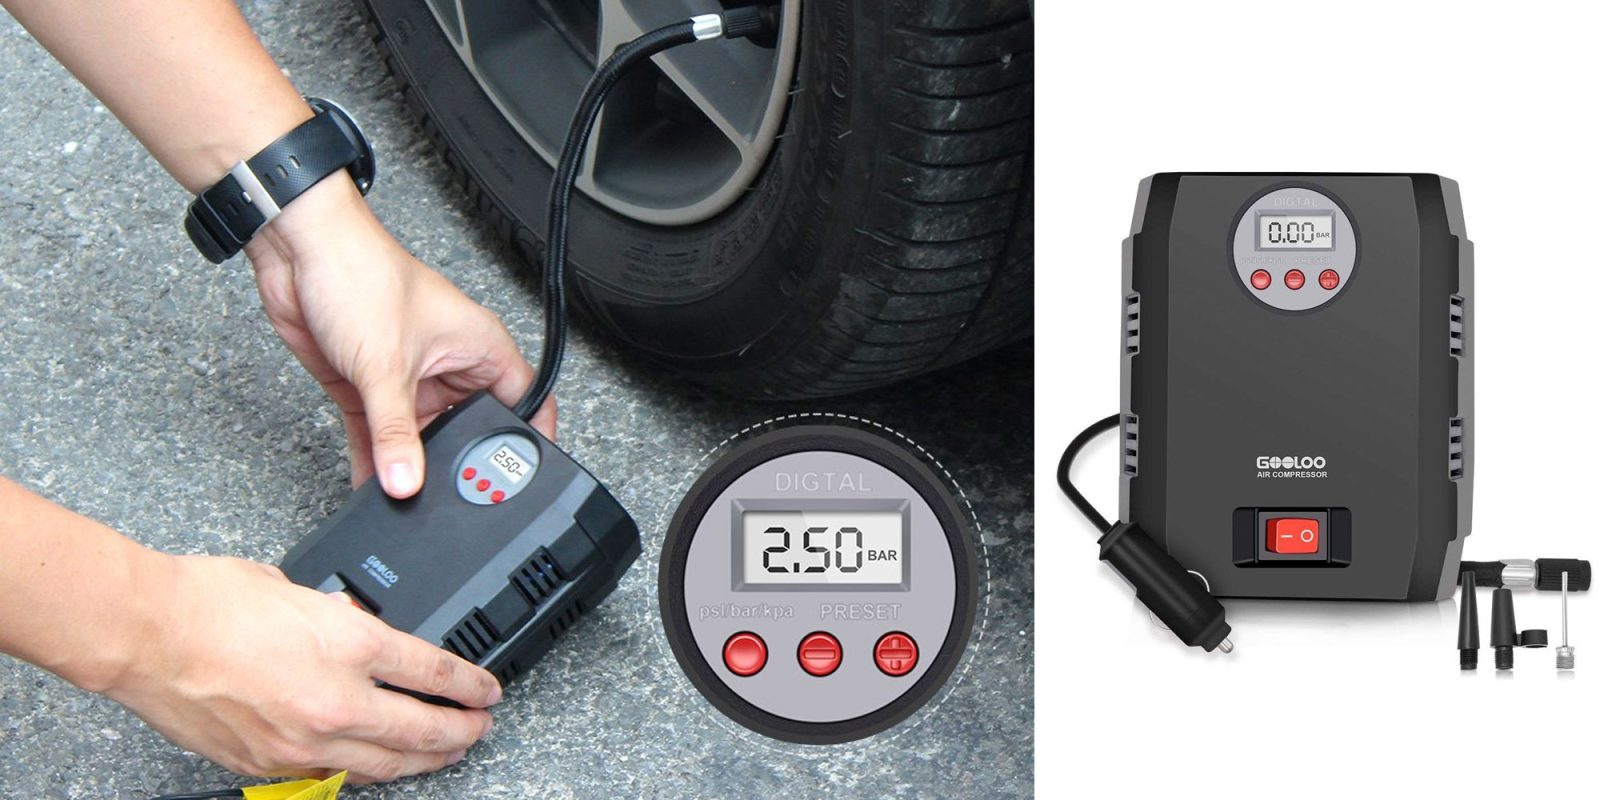 Enjoy better fuel economy by making your tires the proper pressure w/ this $15 compressor